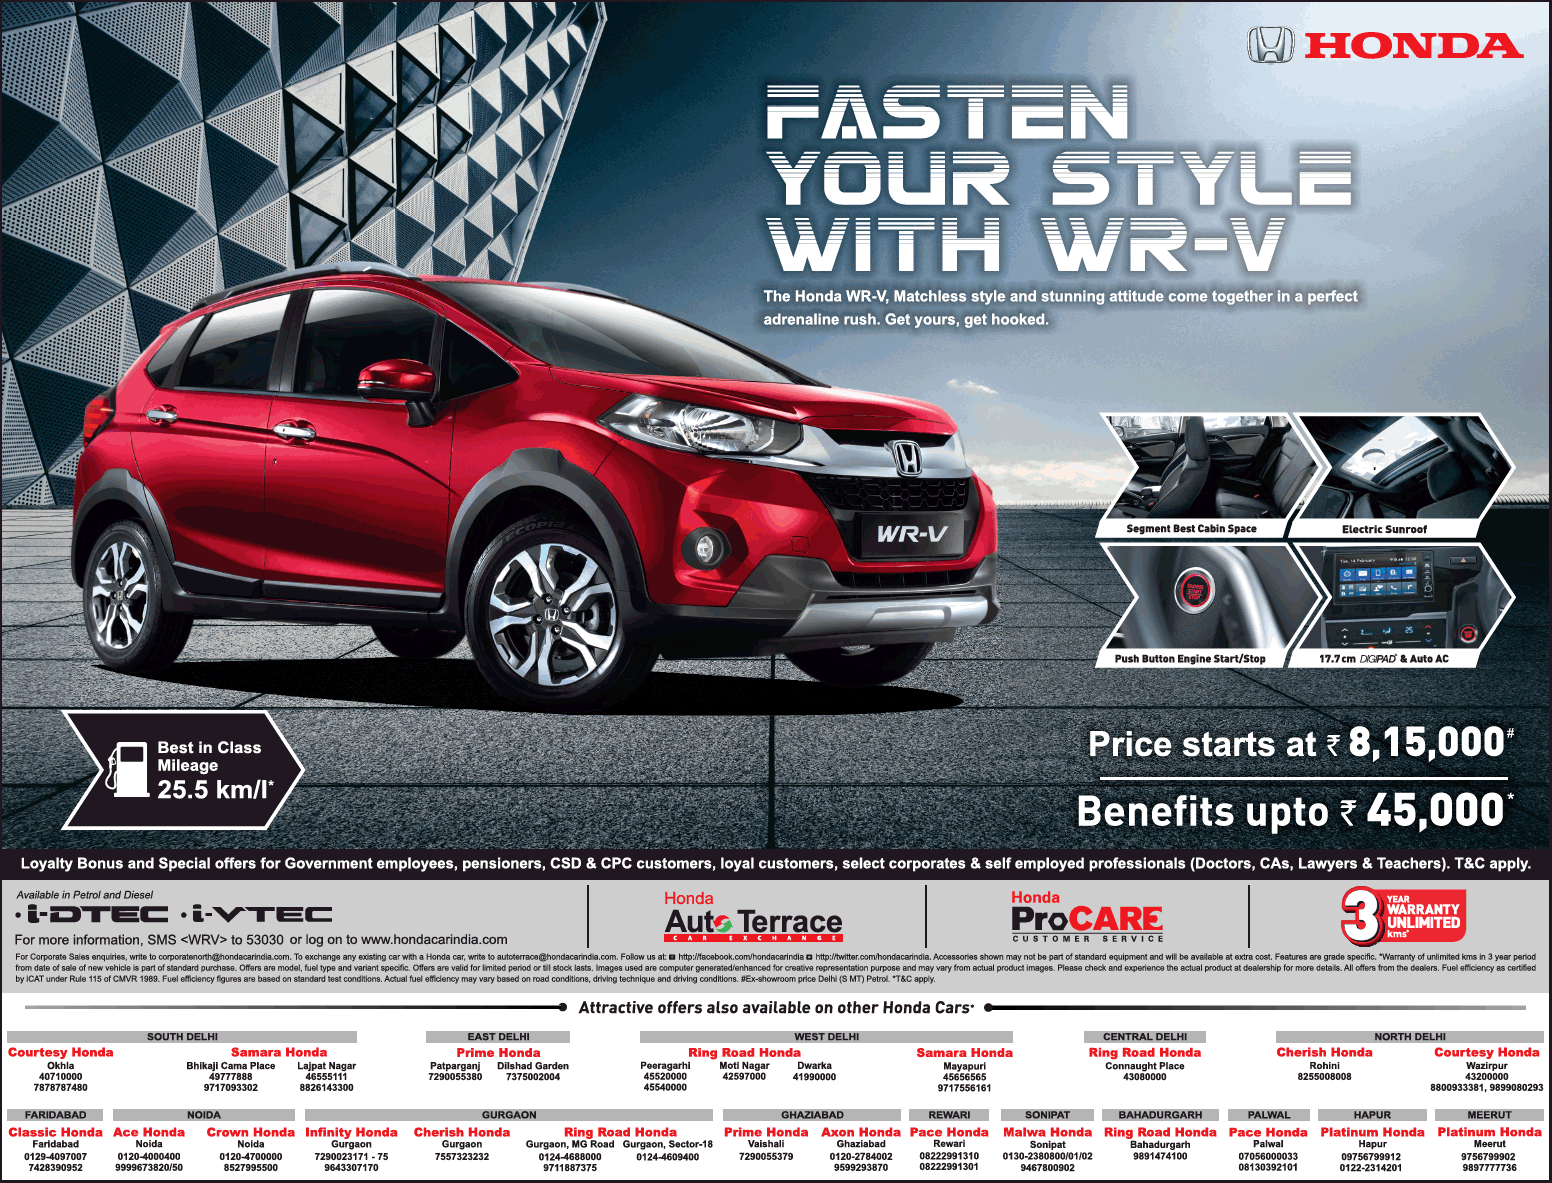 honda-wr-v-fasten-your-style-with-wr-v-ad-delhi-times-25-08-2019.png